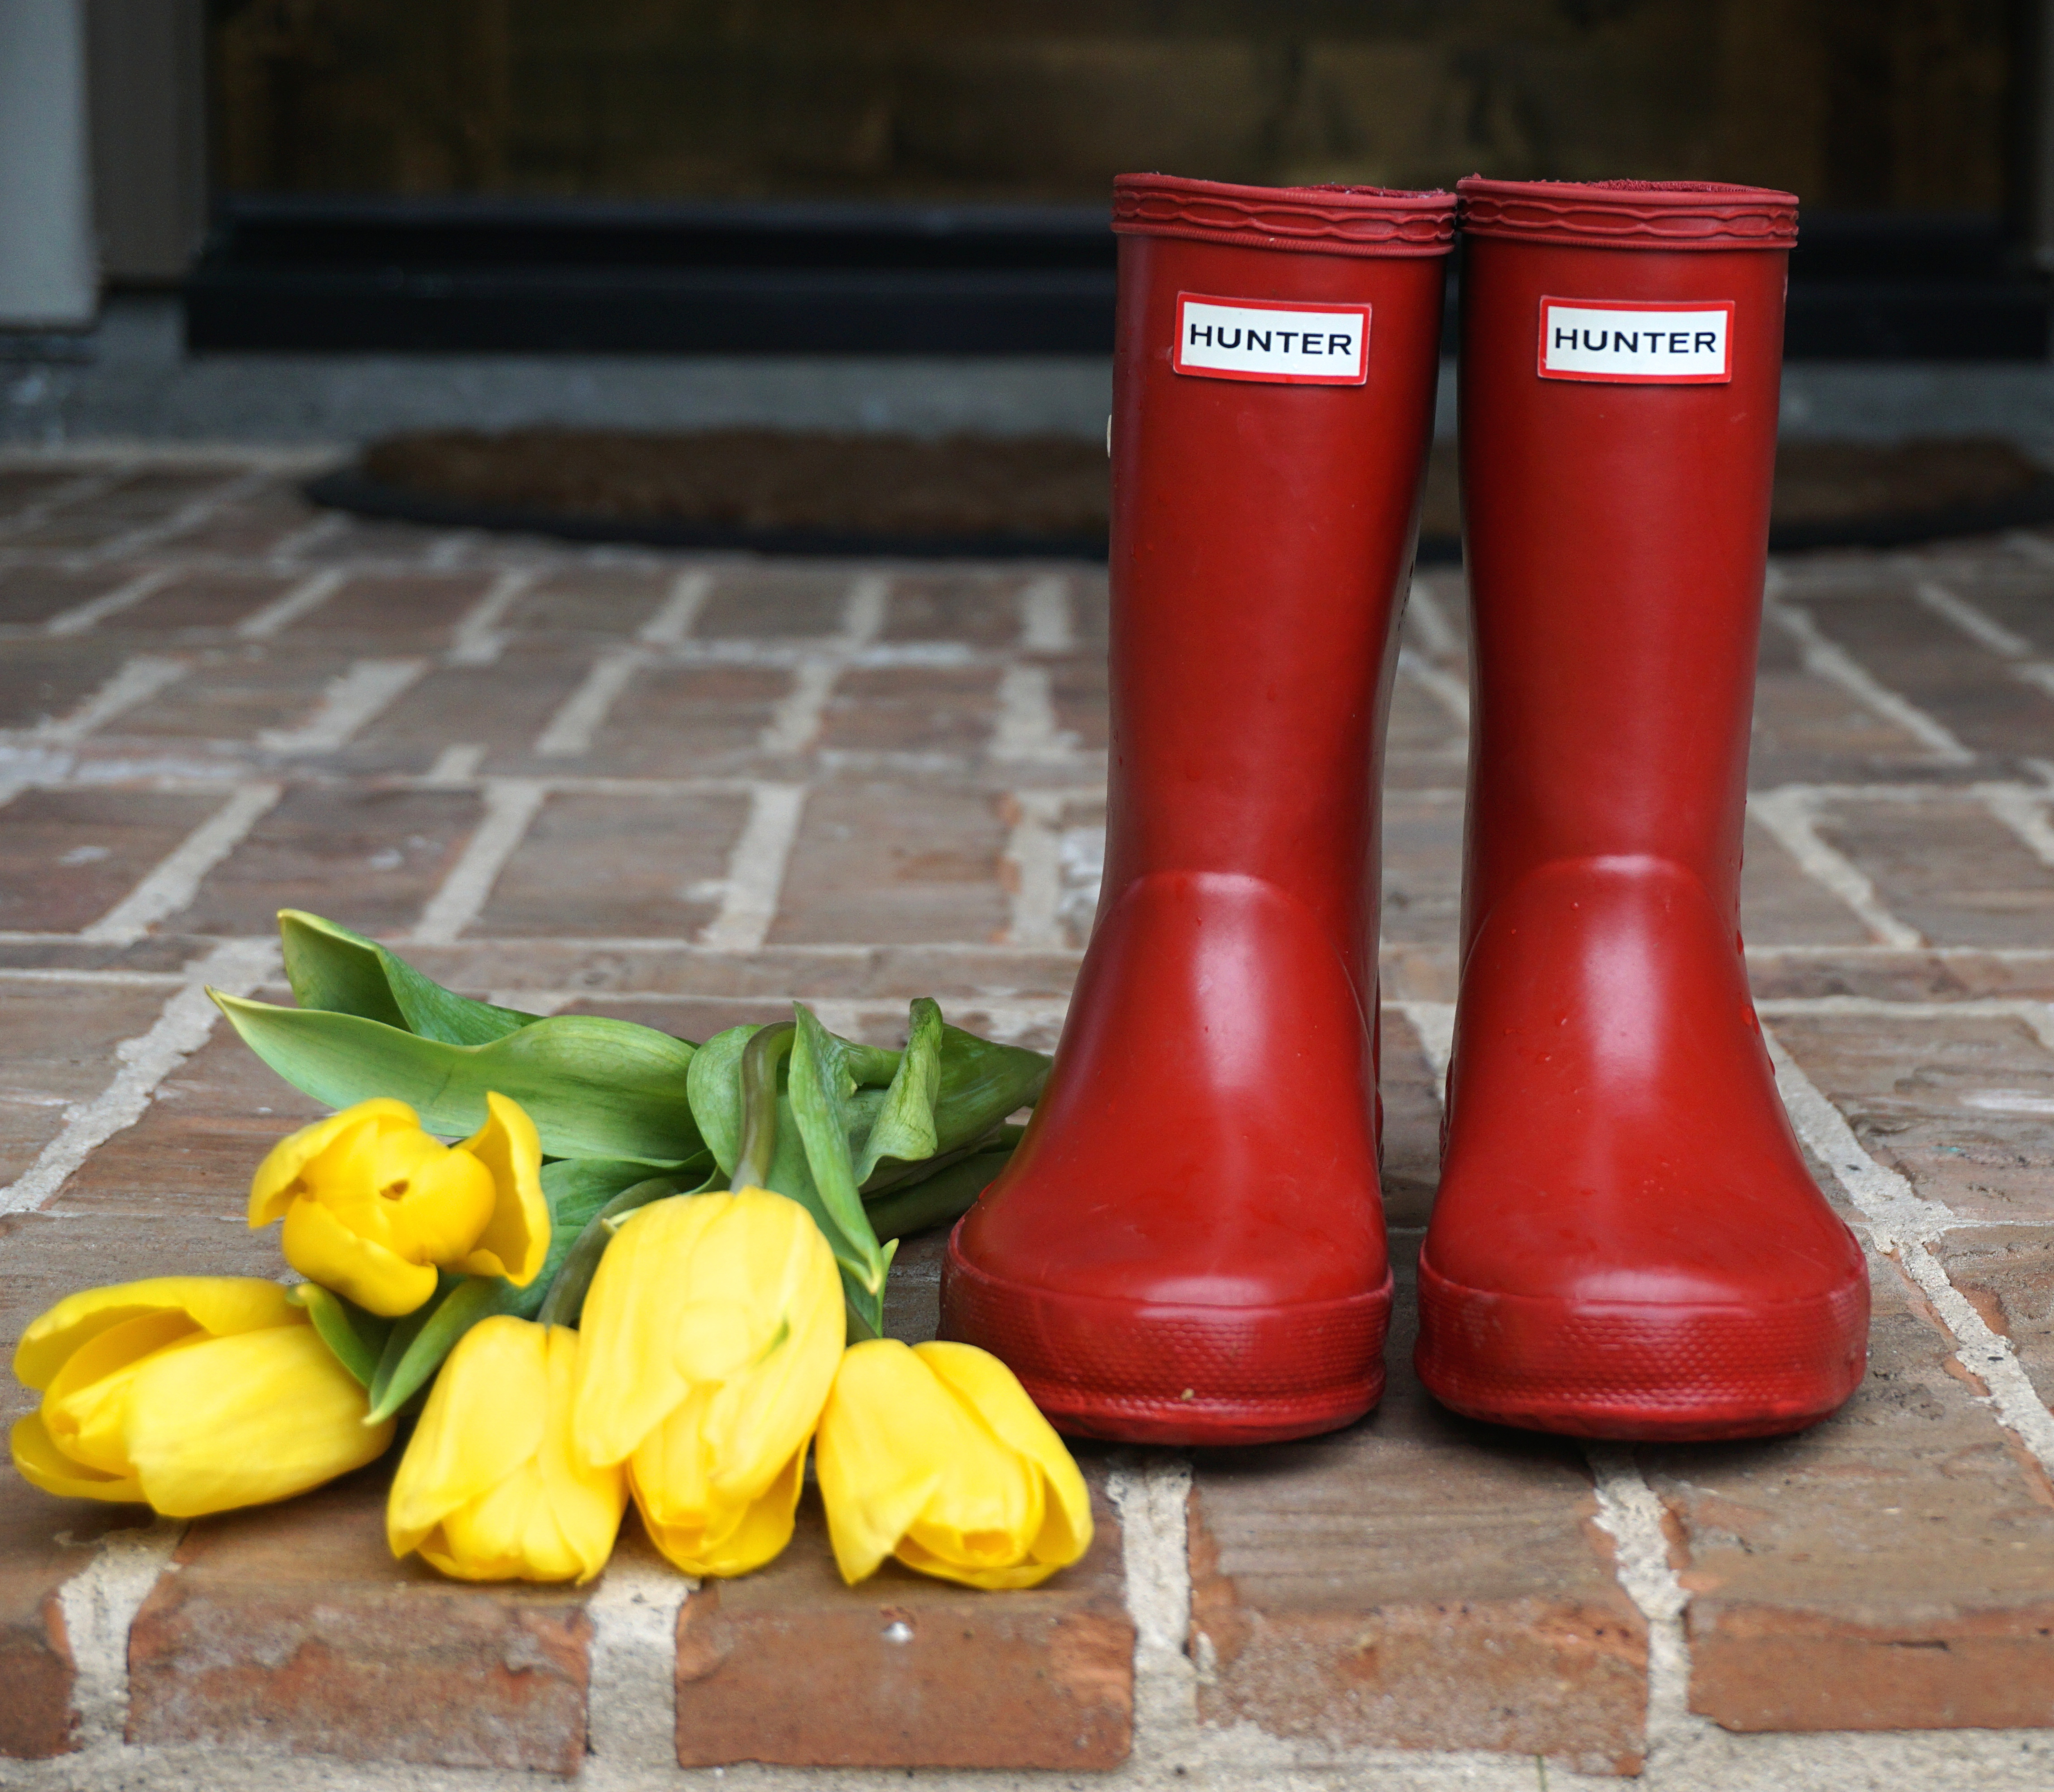 HUNTER BOOTS TO THE RESCUE